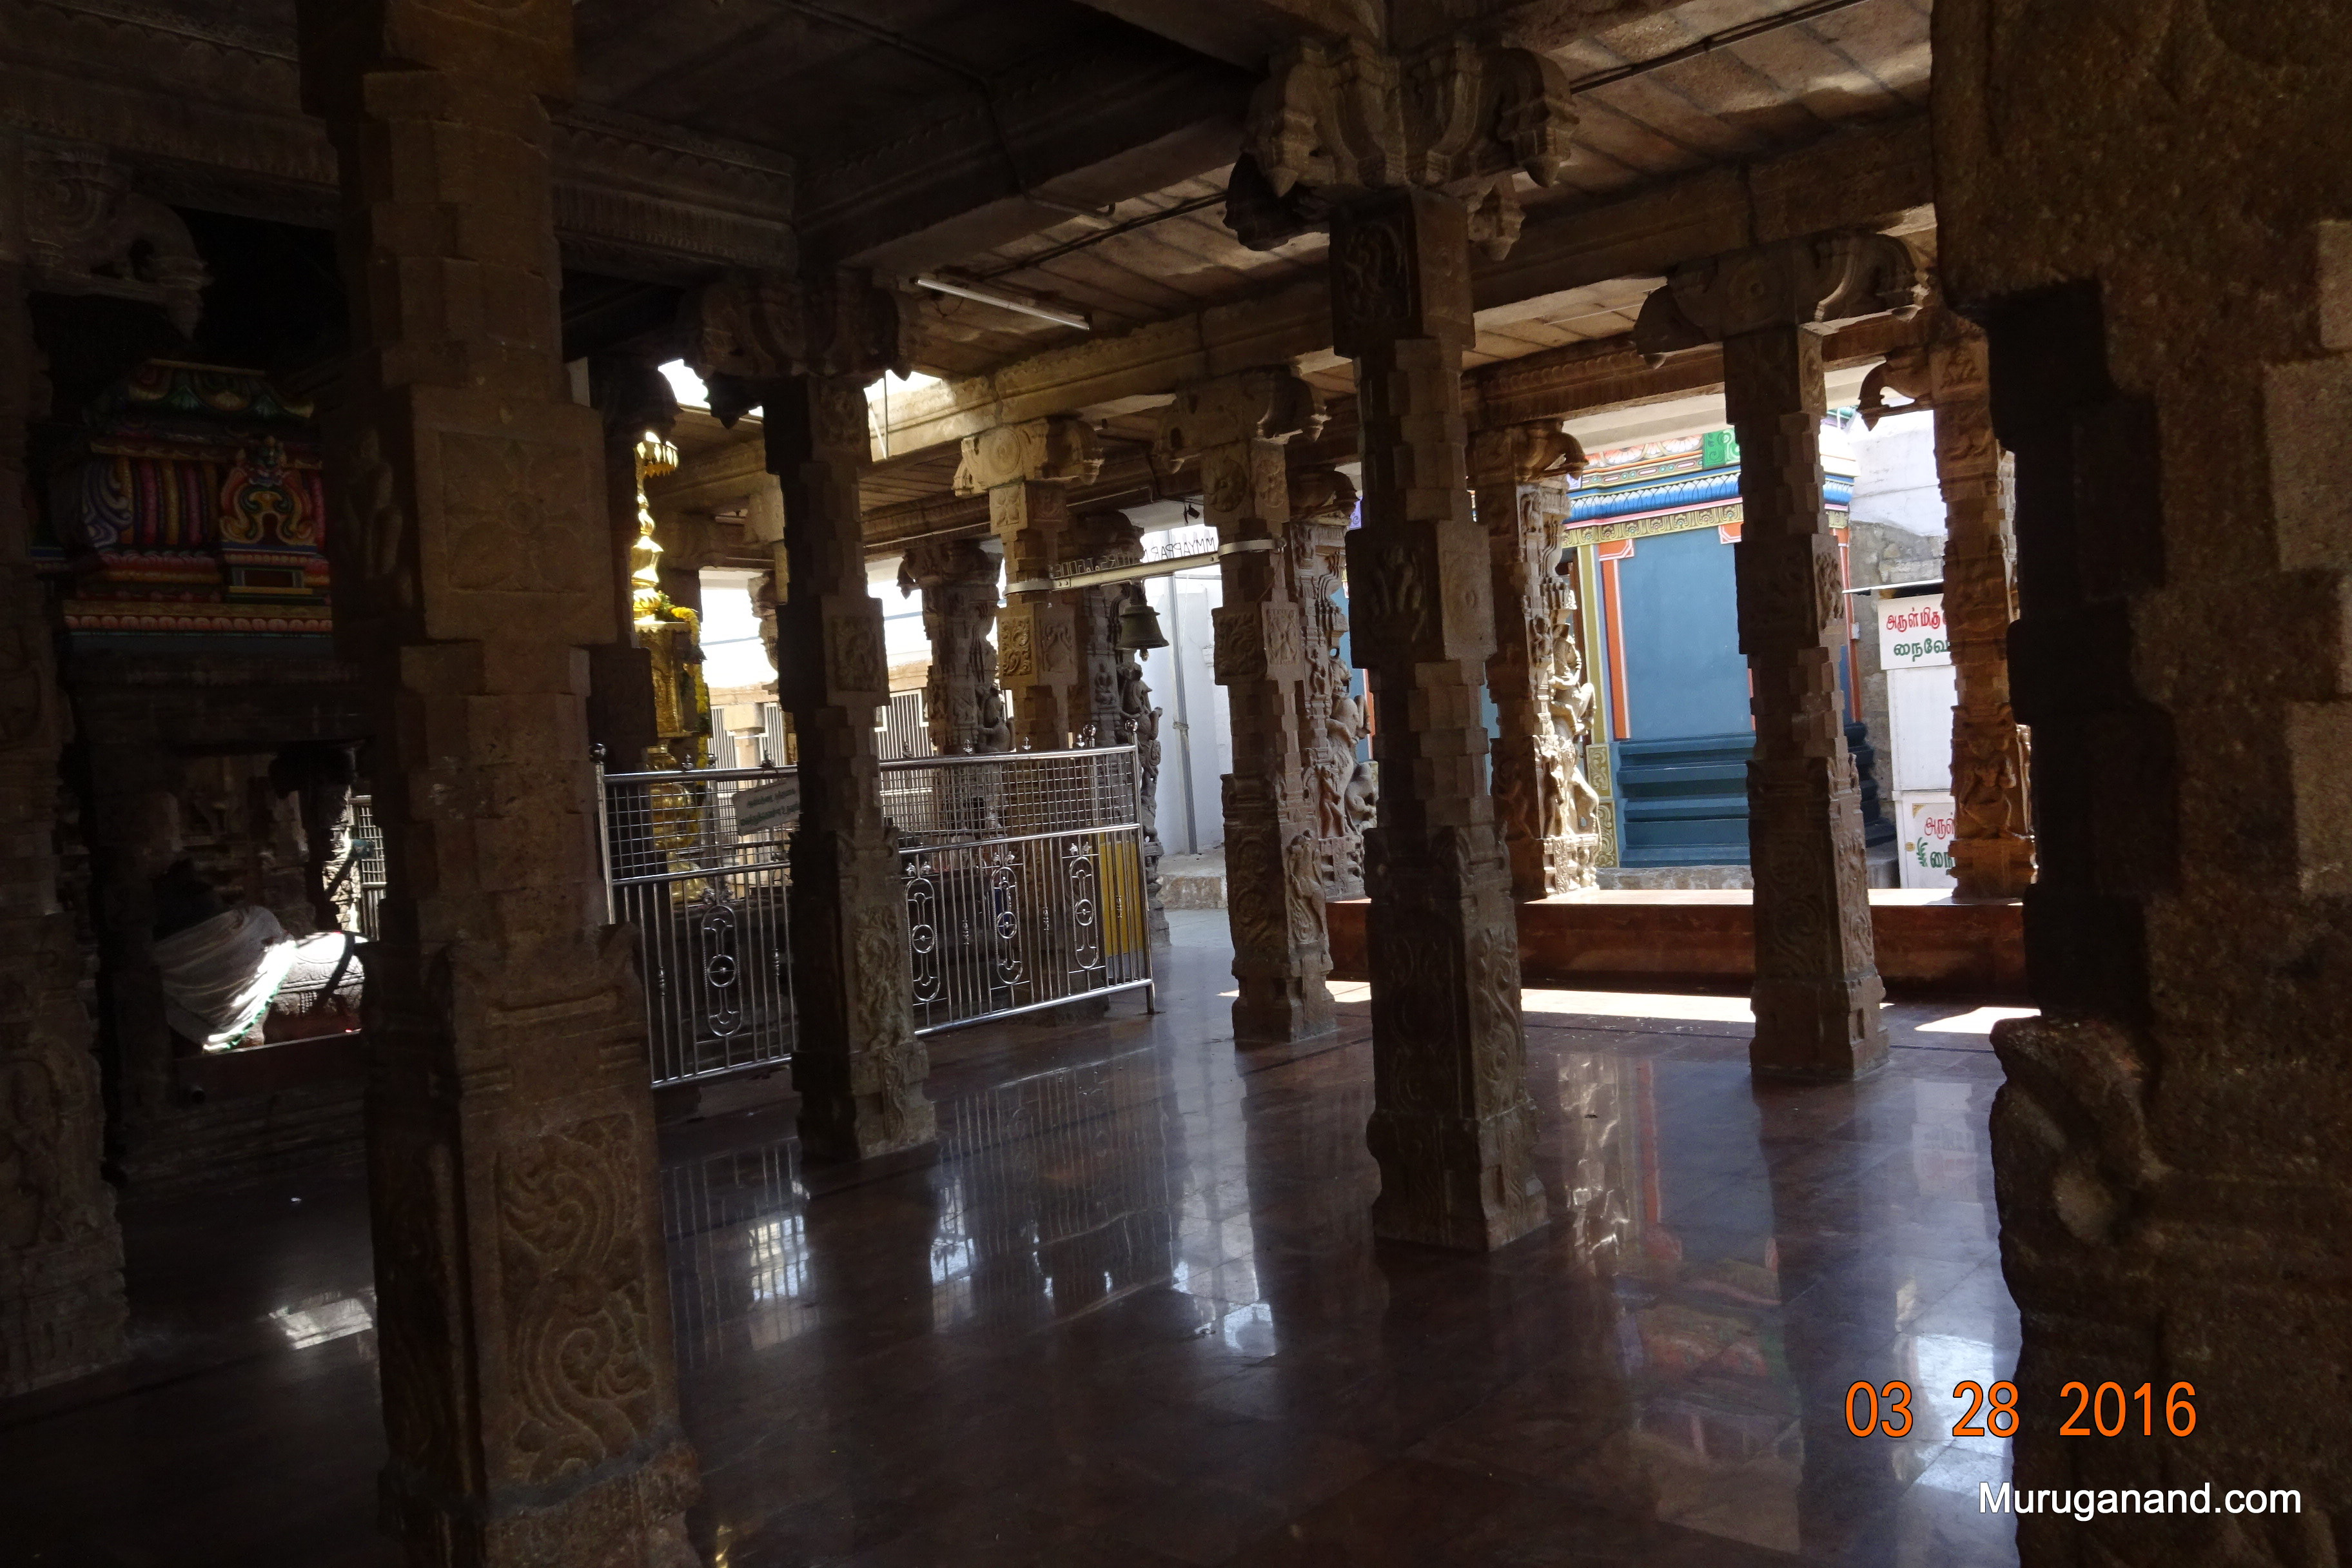 One can spend hours, studying every pillar; intricate art